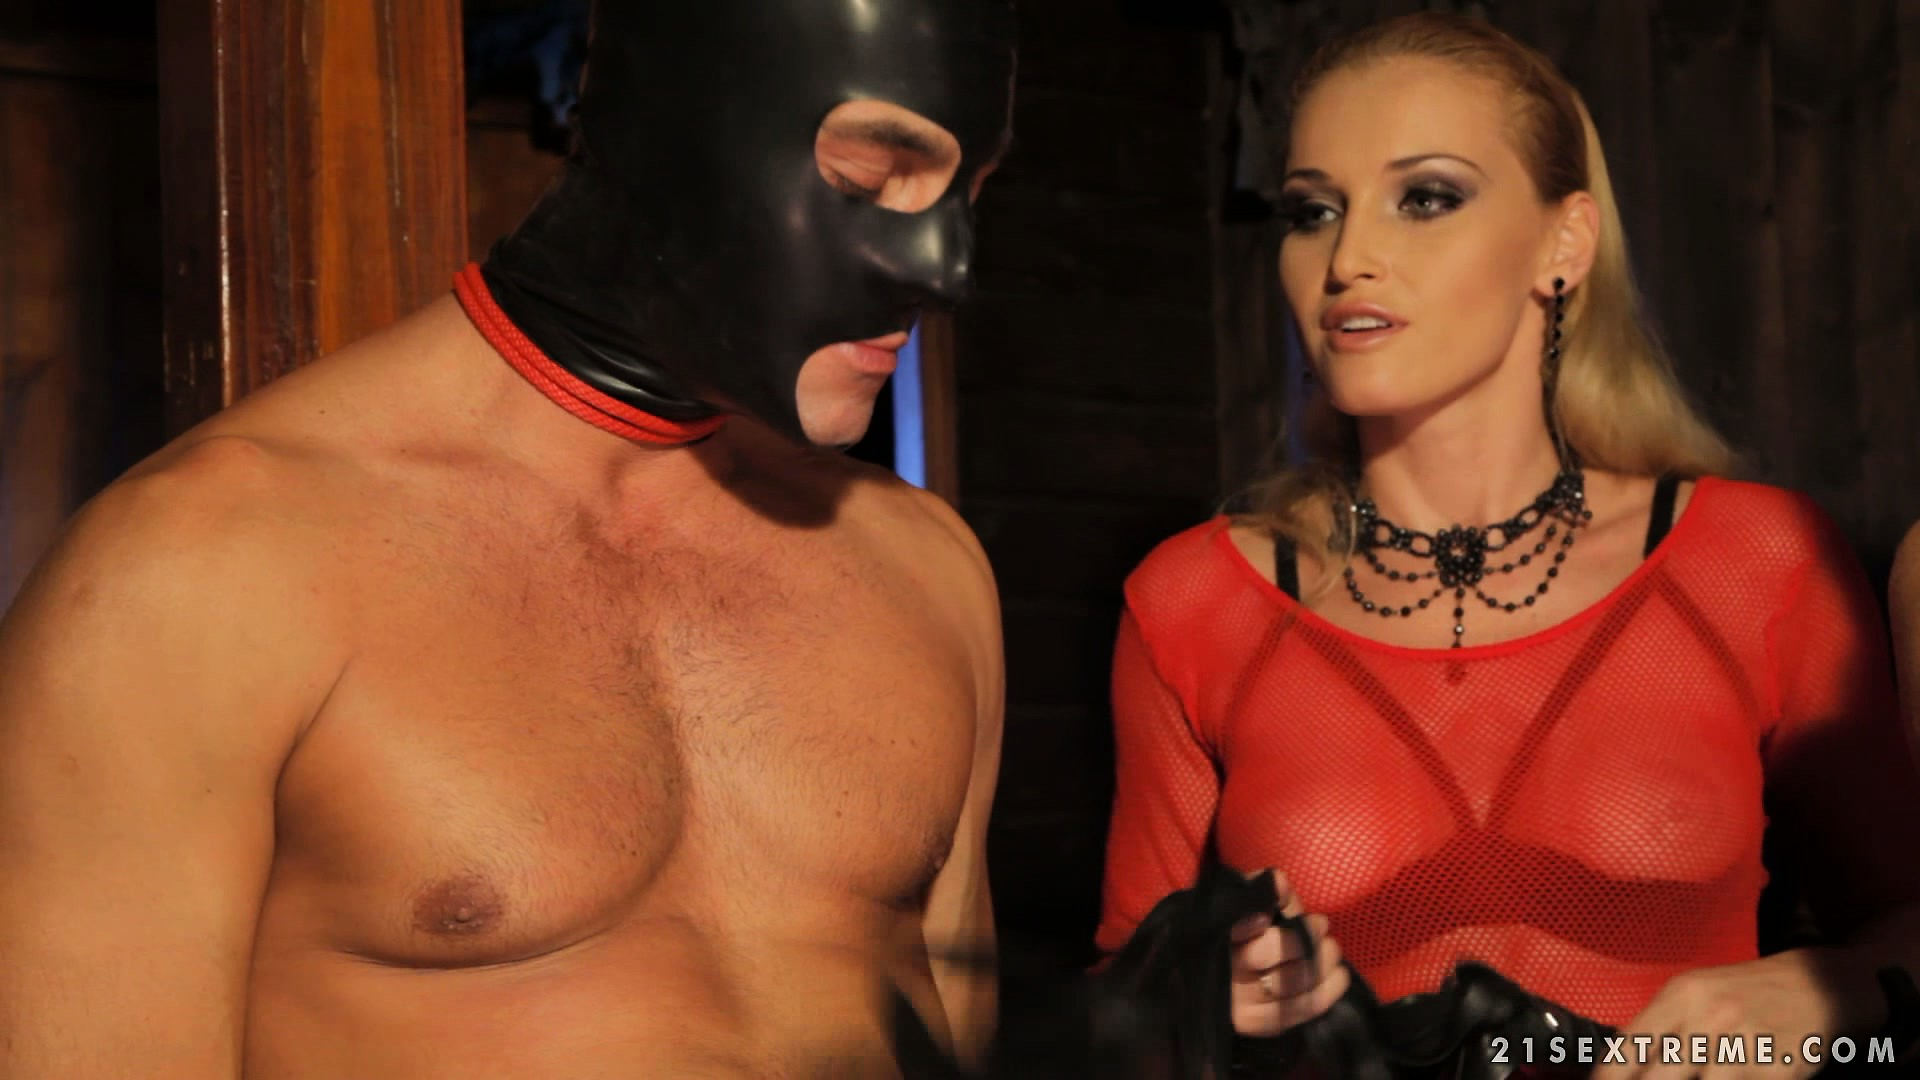 Porno Video of Mistress Has Her Masked Slaves Perform For Her As She Watches